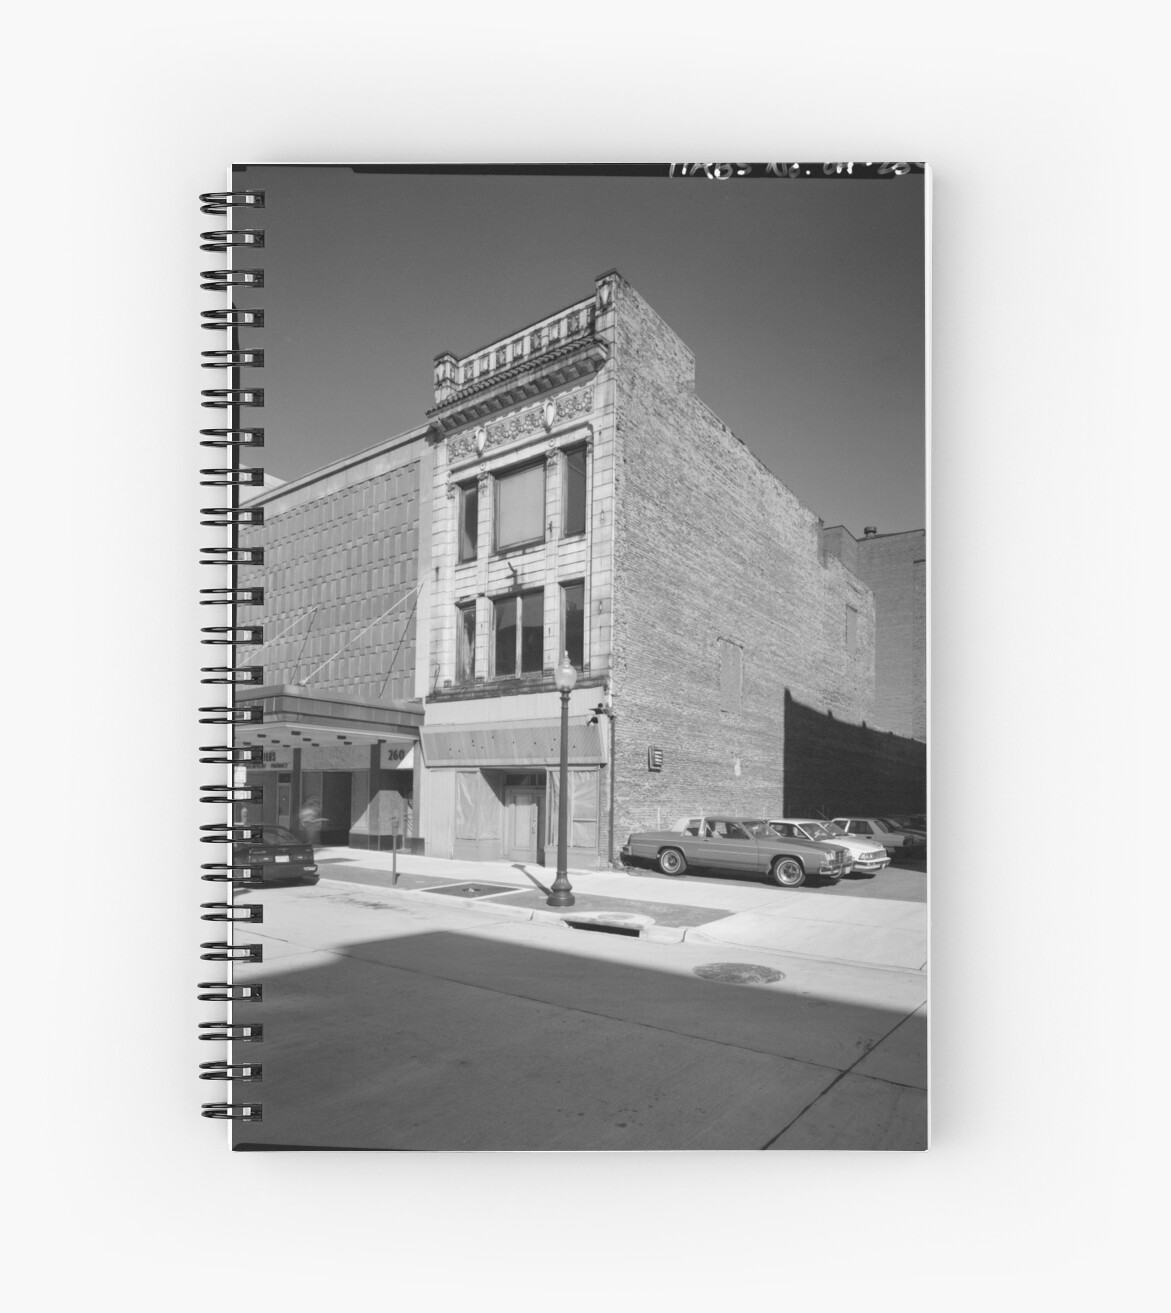 Jay's Lunch - Youngstown, Ohio by MetroStore